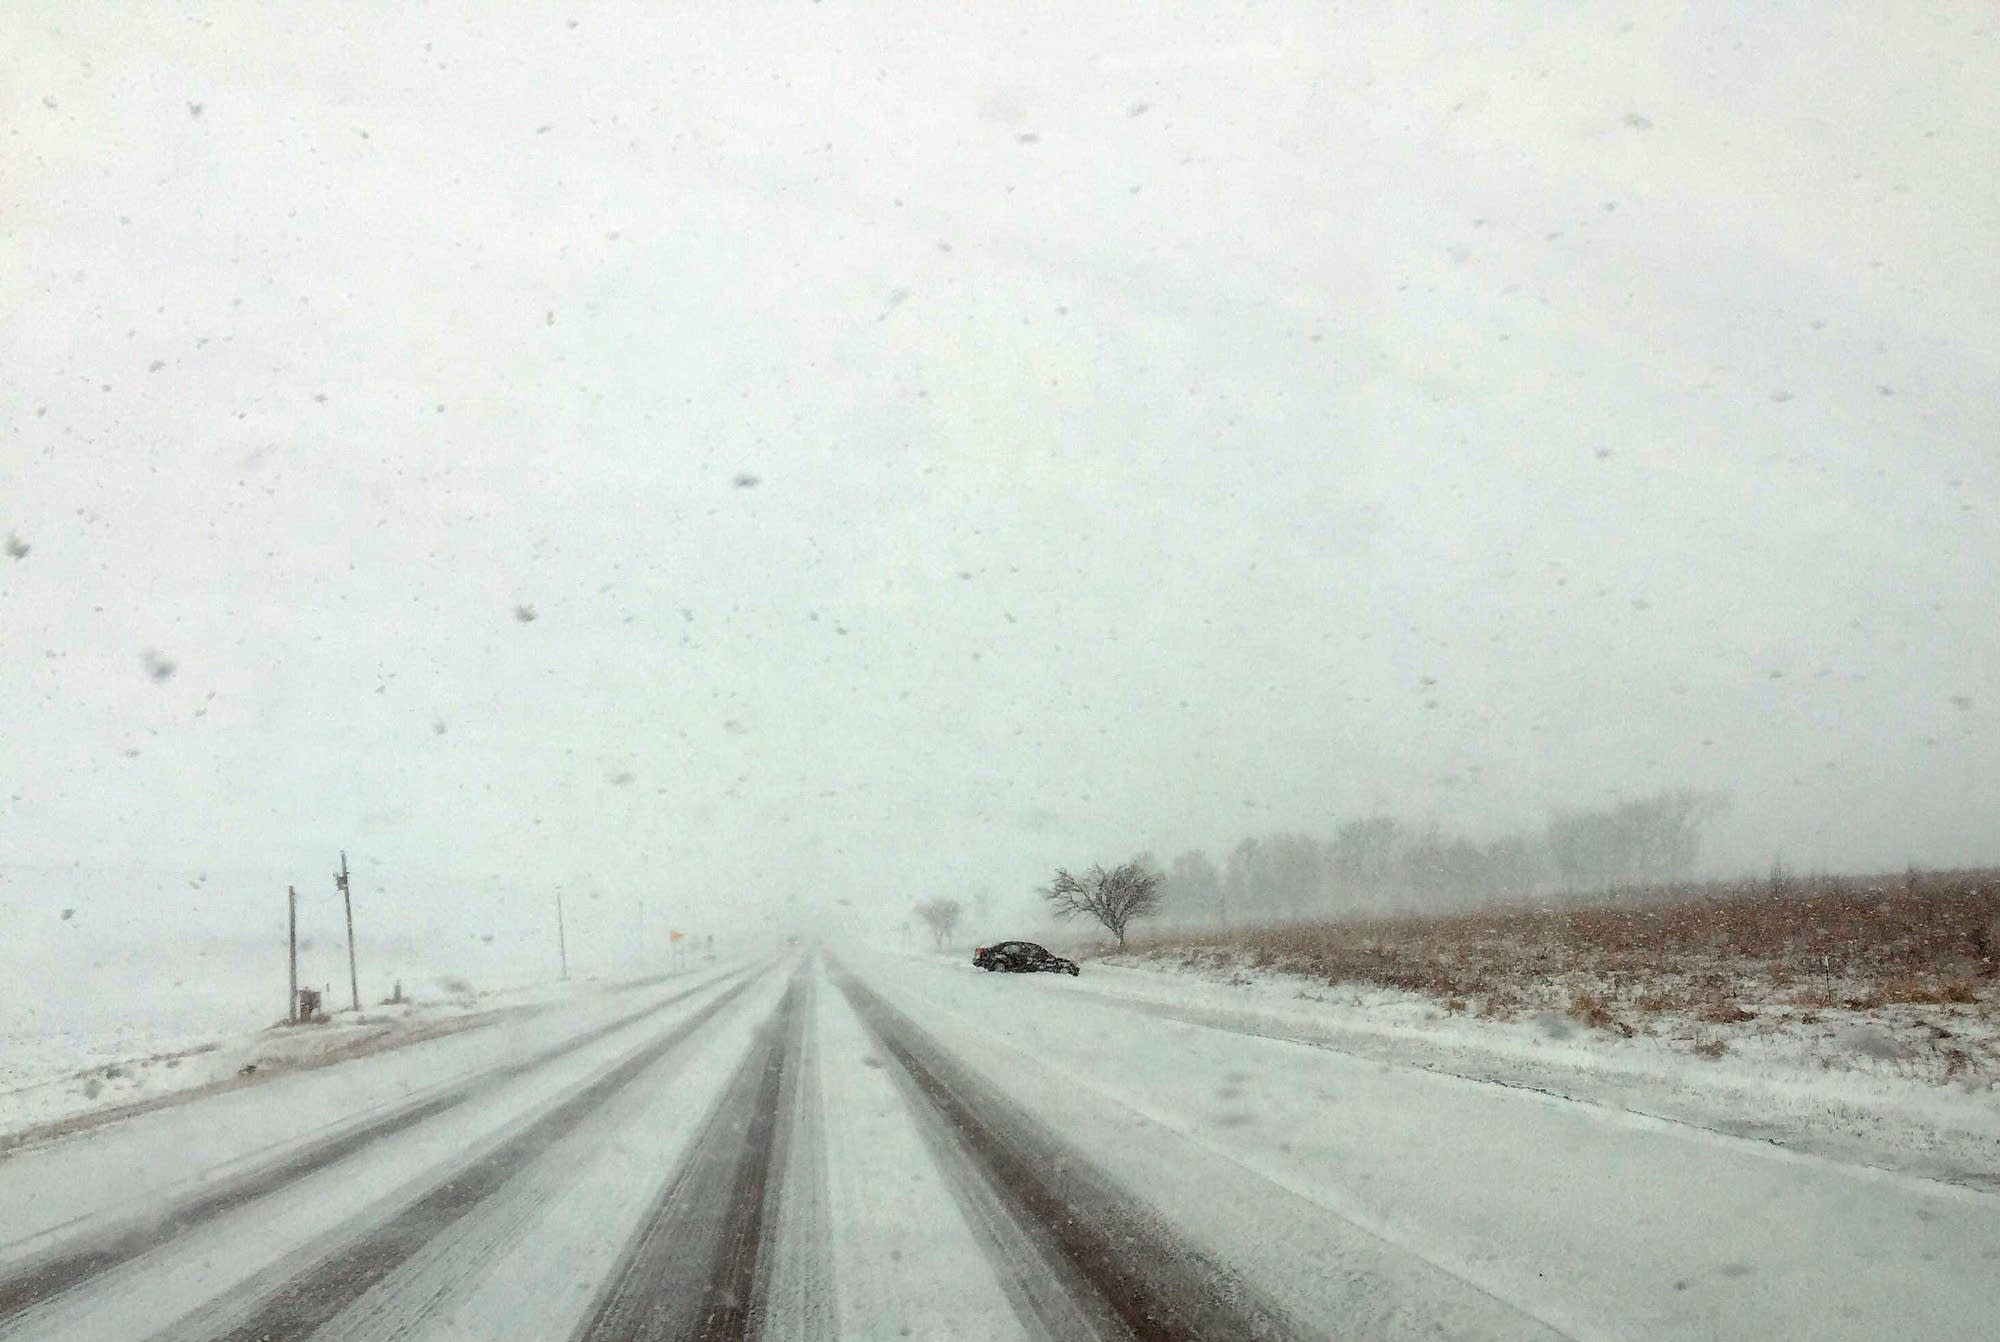 Heavy snow and wind created challenging road conditions in Willmar, Minn.